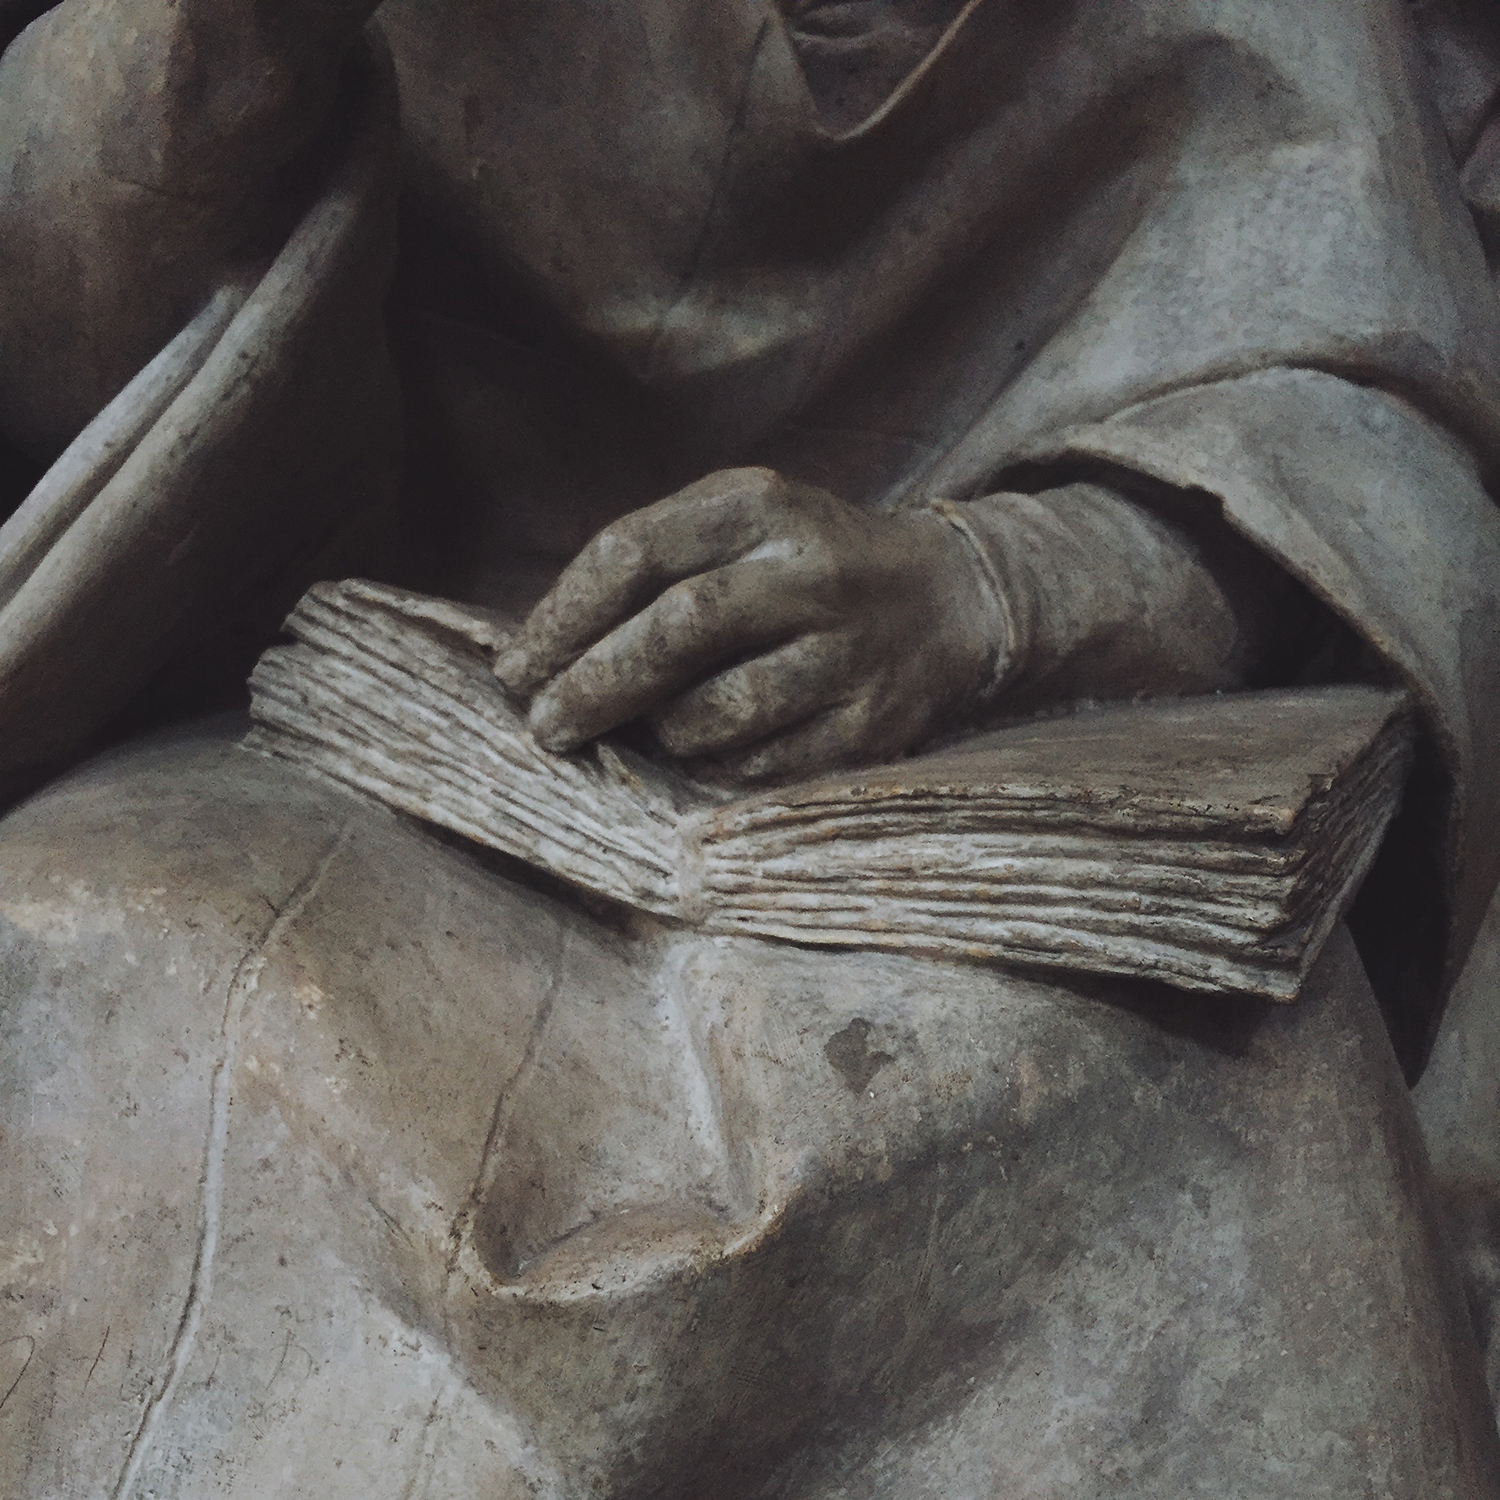 Sculpture of a book in the lap of probably a saint, but it's not quite clear